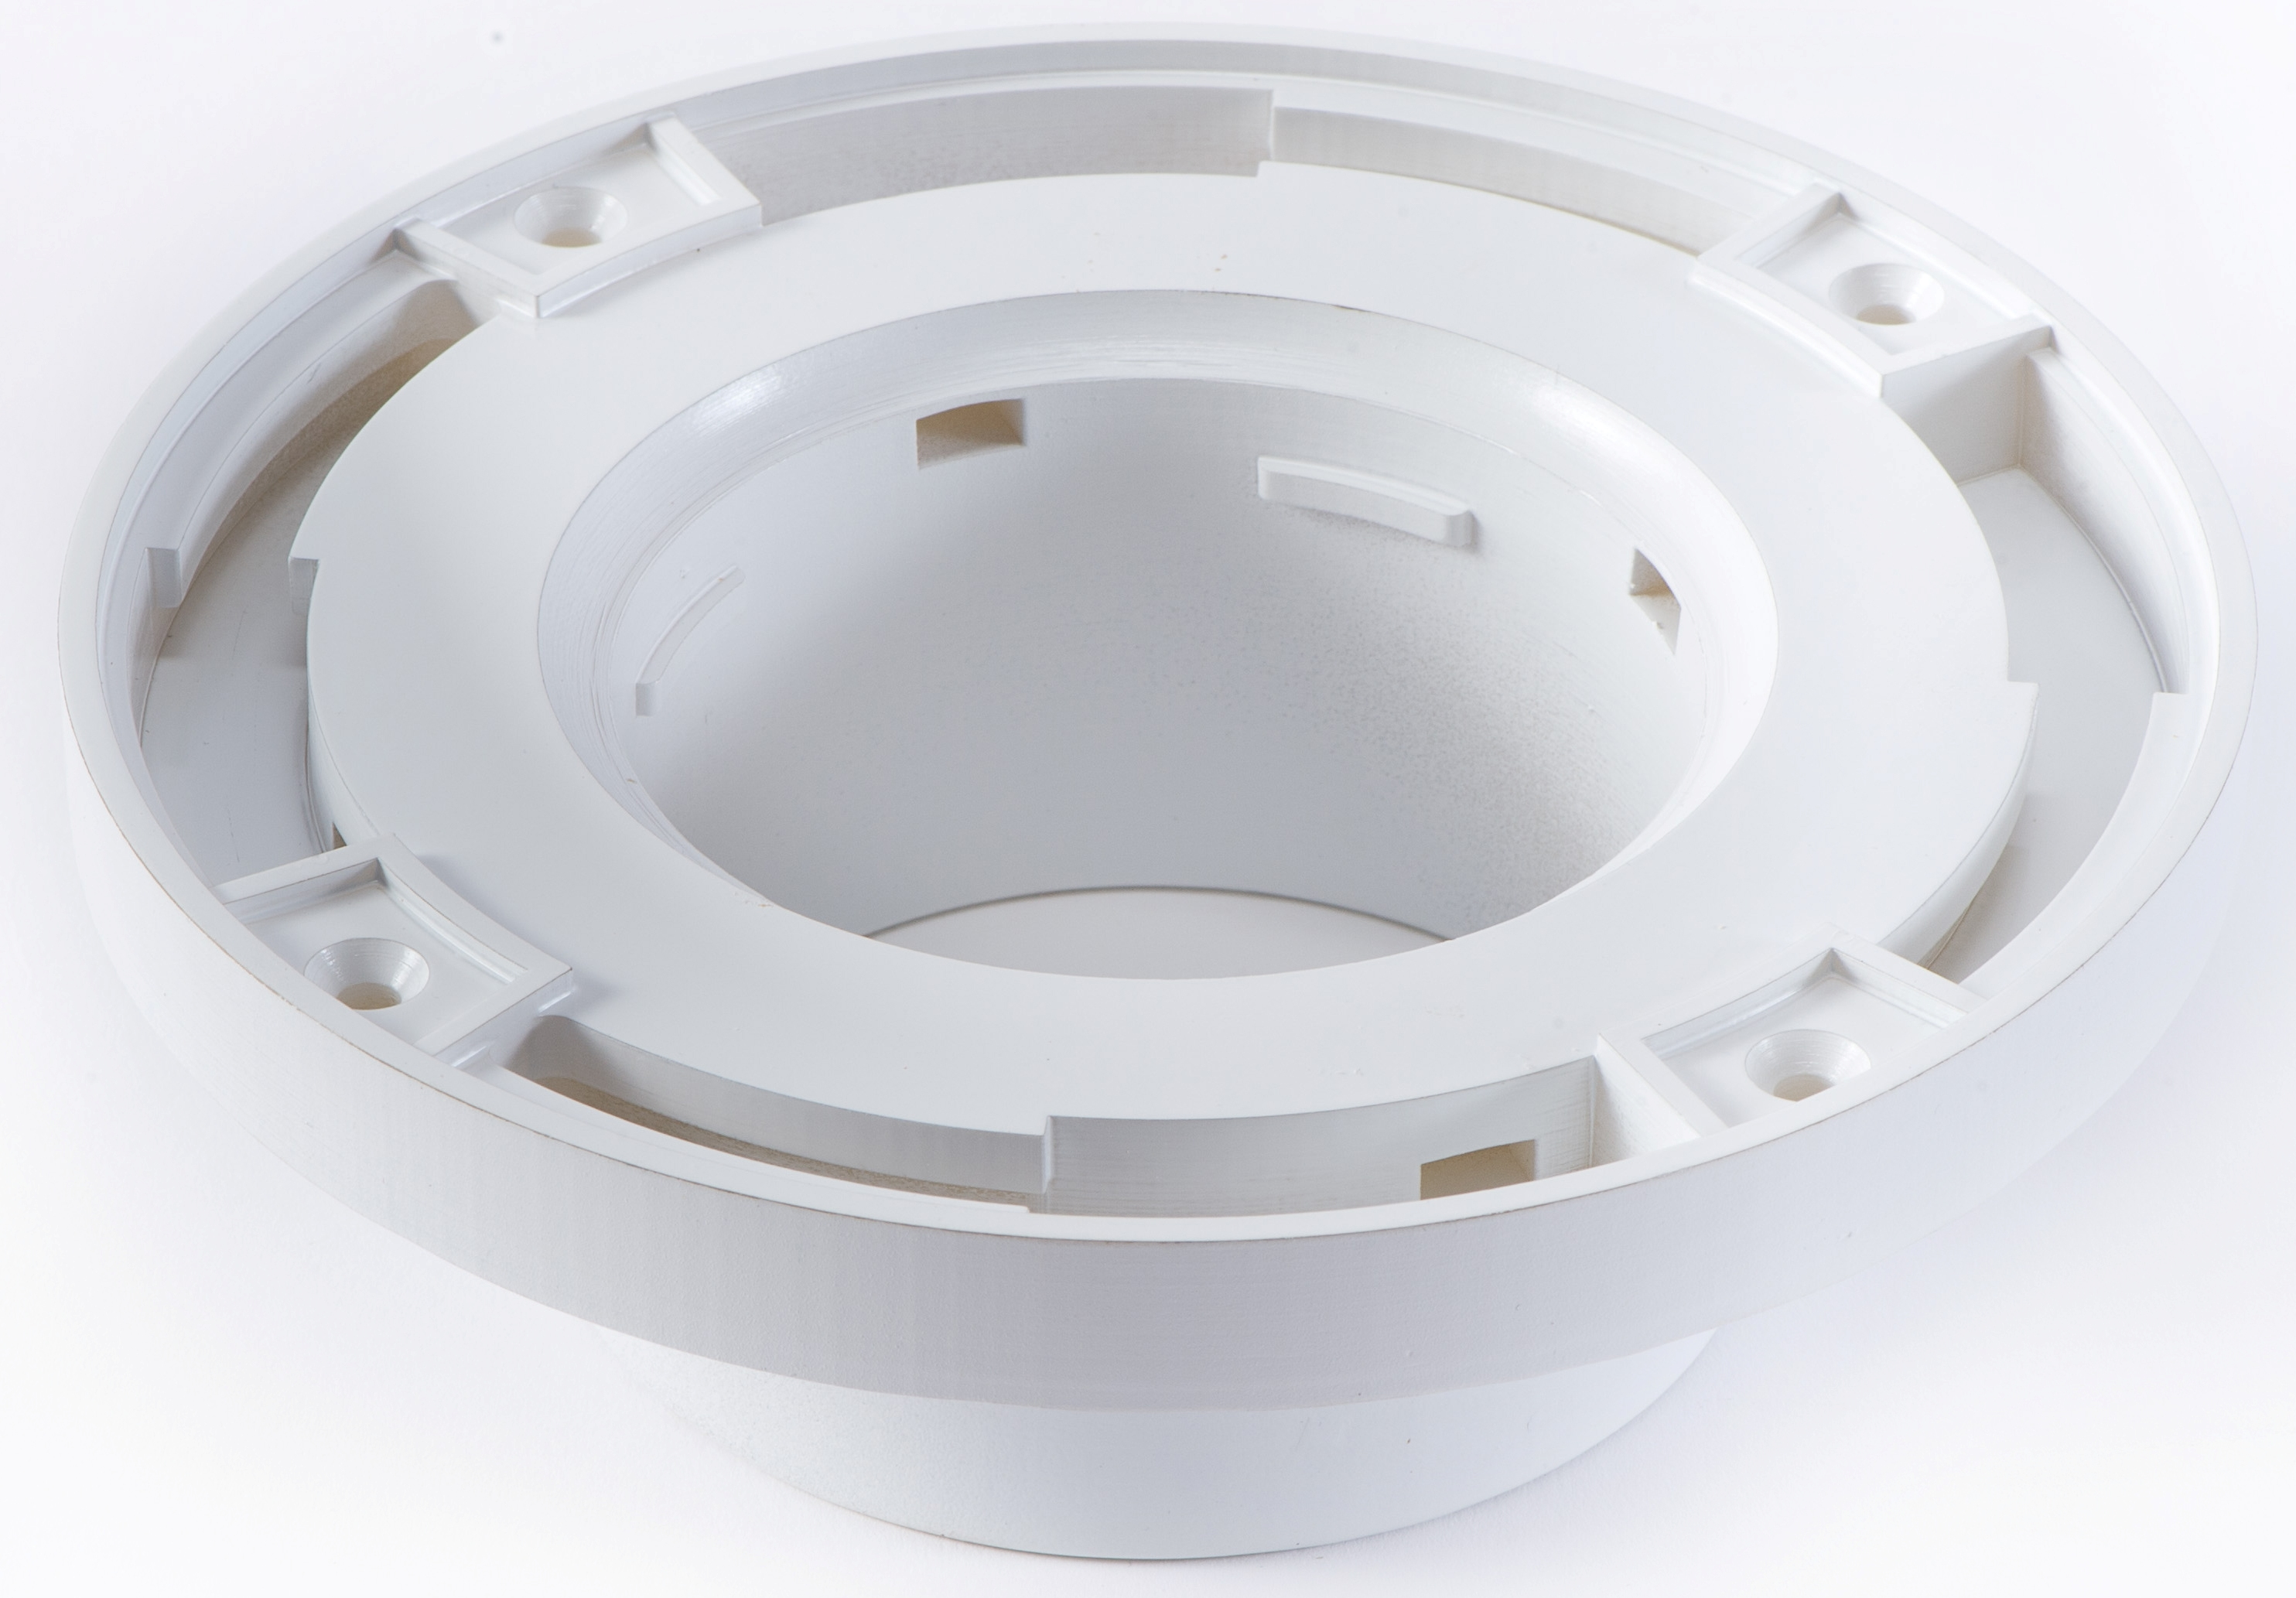 Toilet Flange Tile Guide And Barracuda Brackets